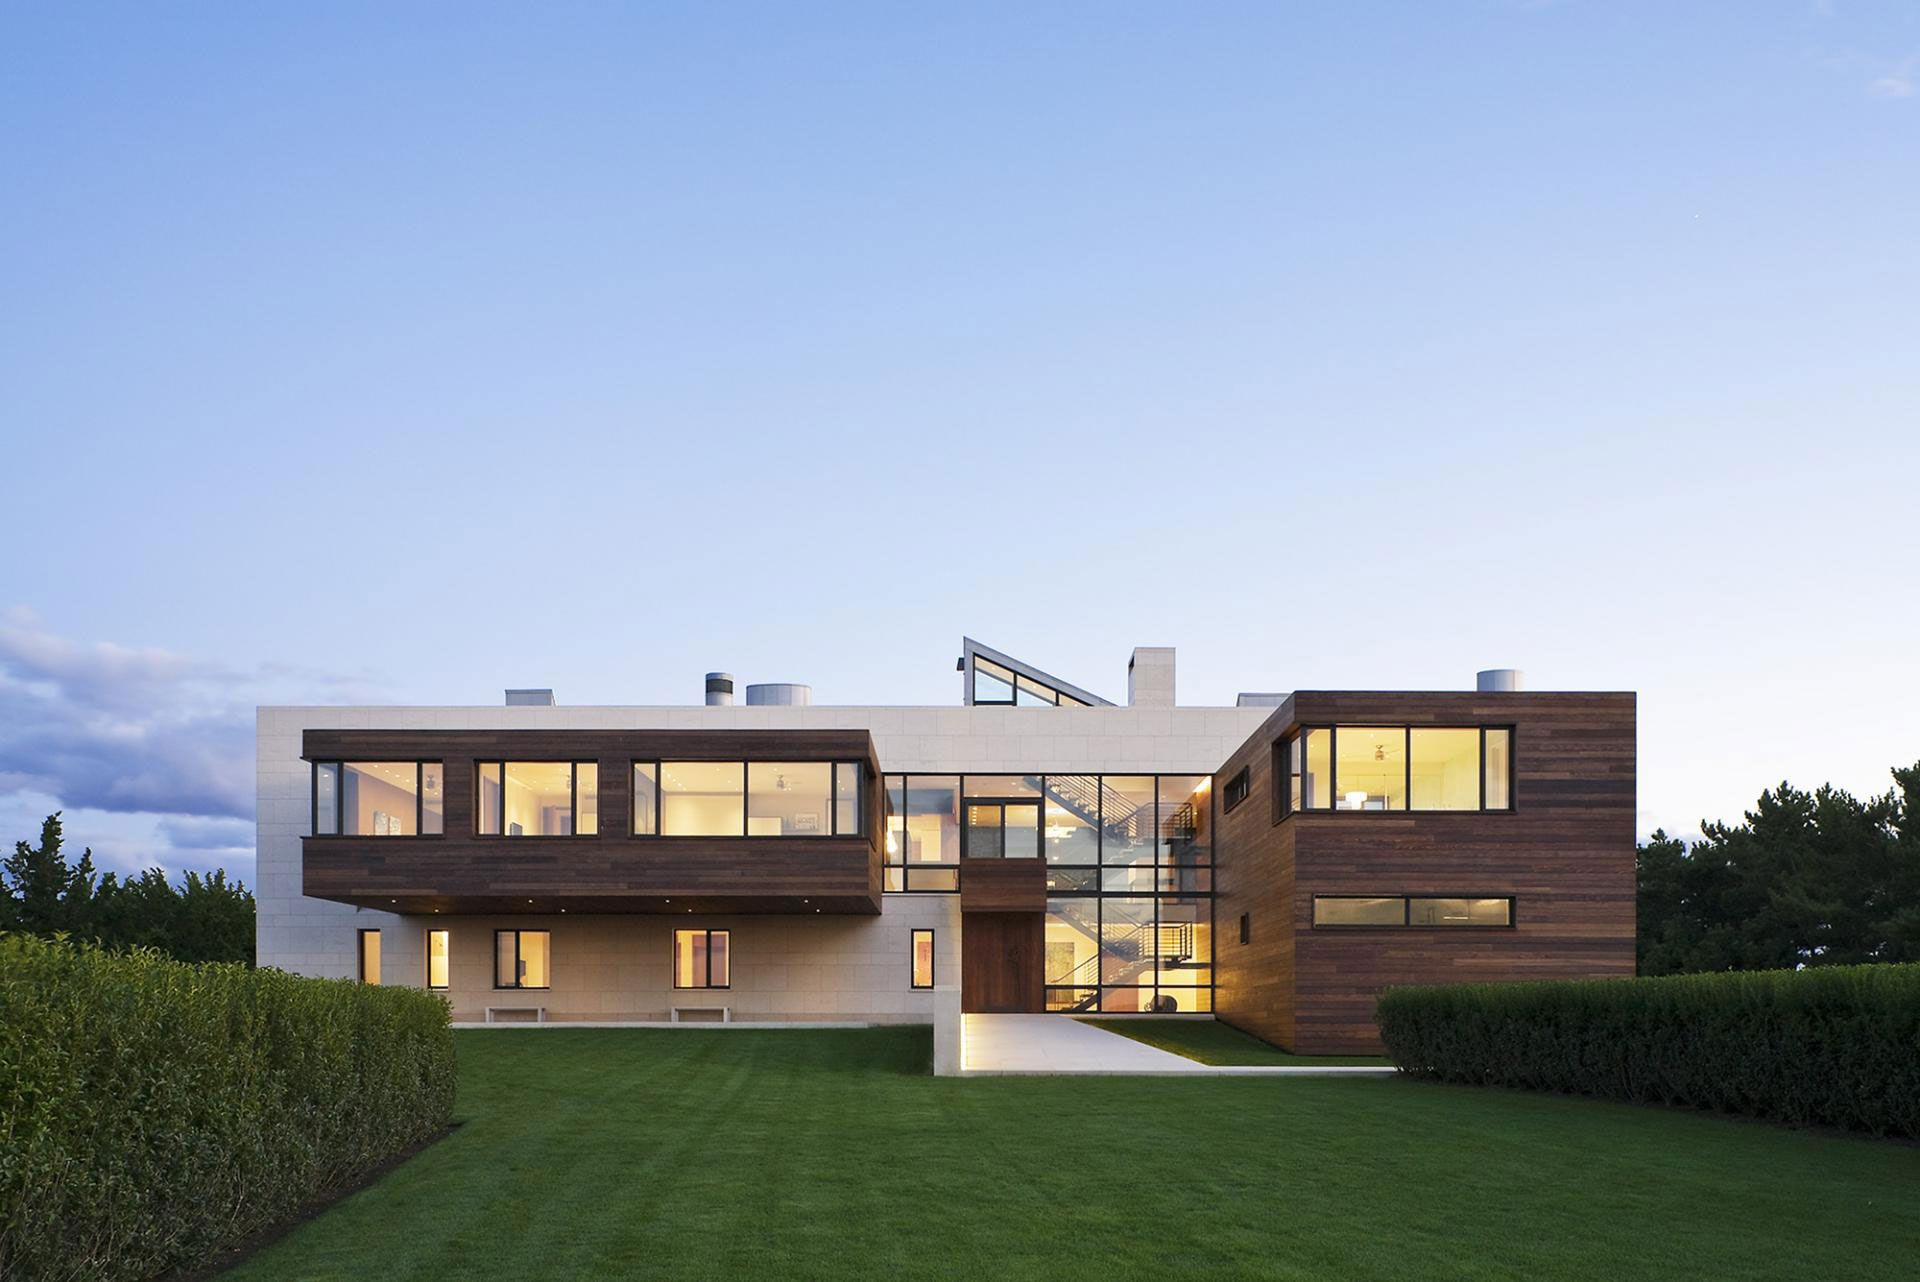 southampton beach house by alexander gorlin architects in